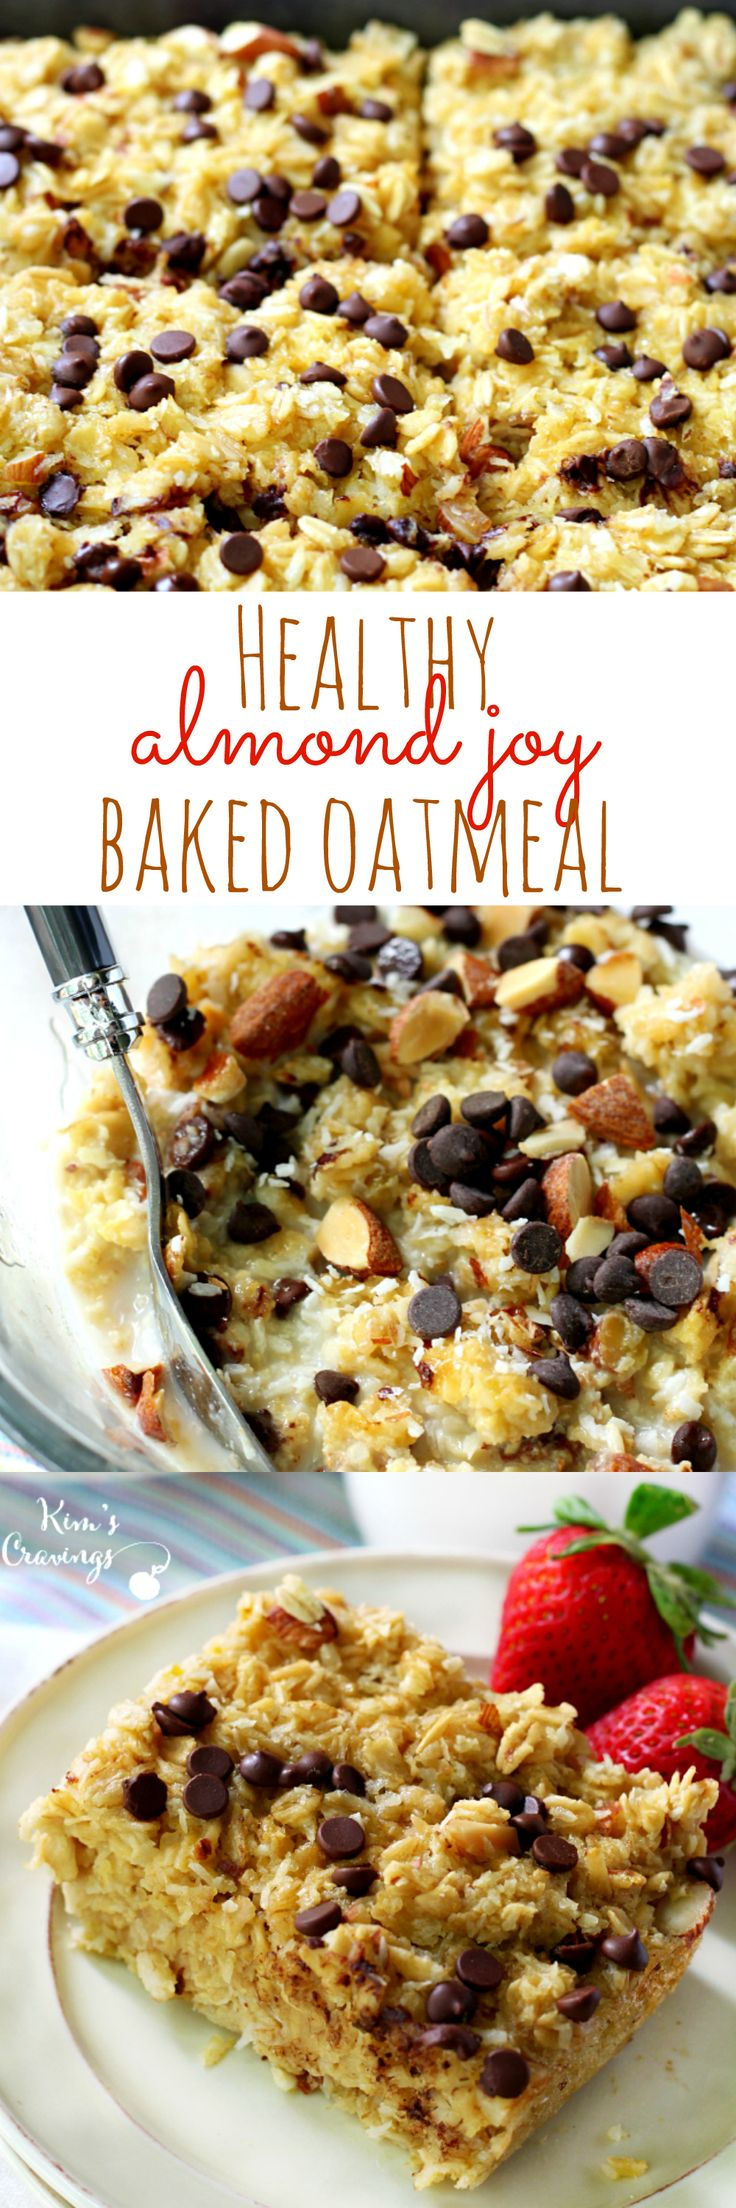 Healthy Almond Joy Baked Oatmeal